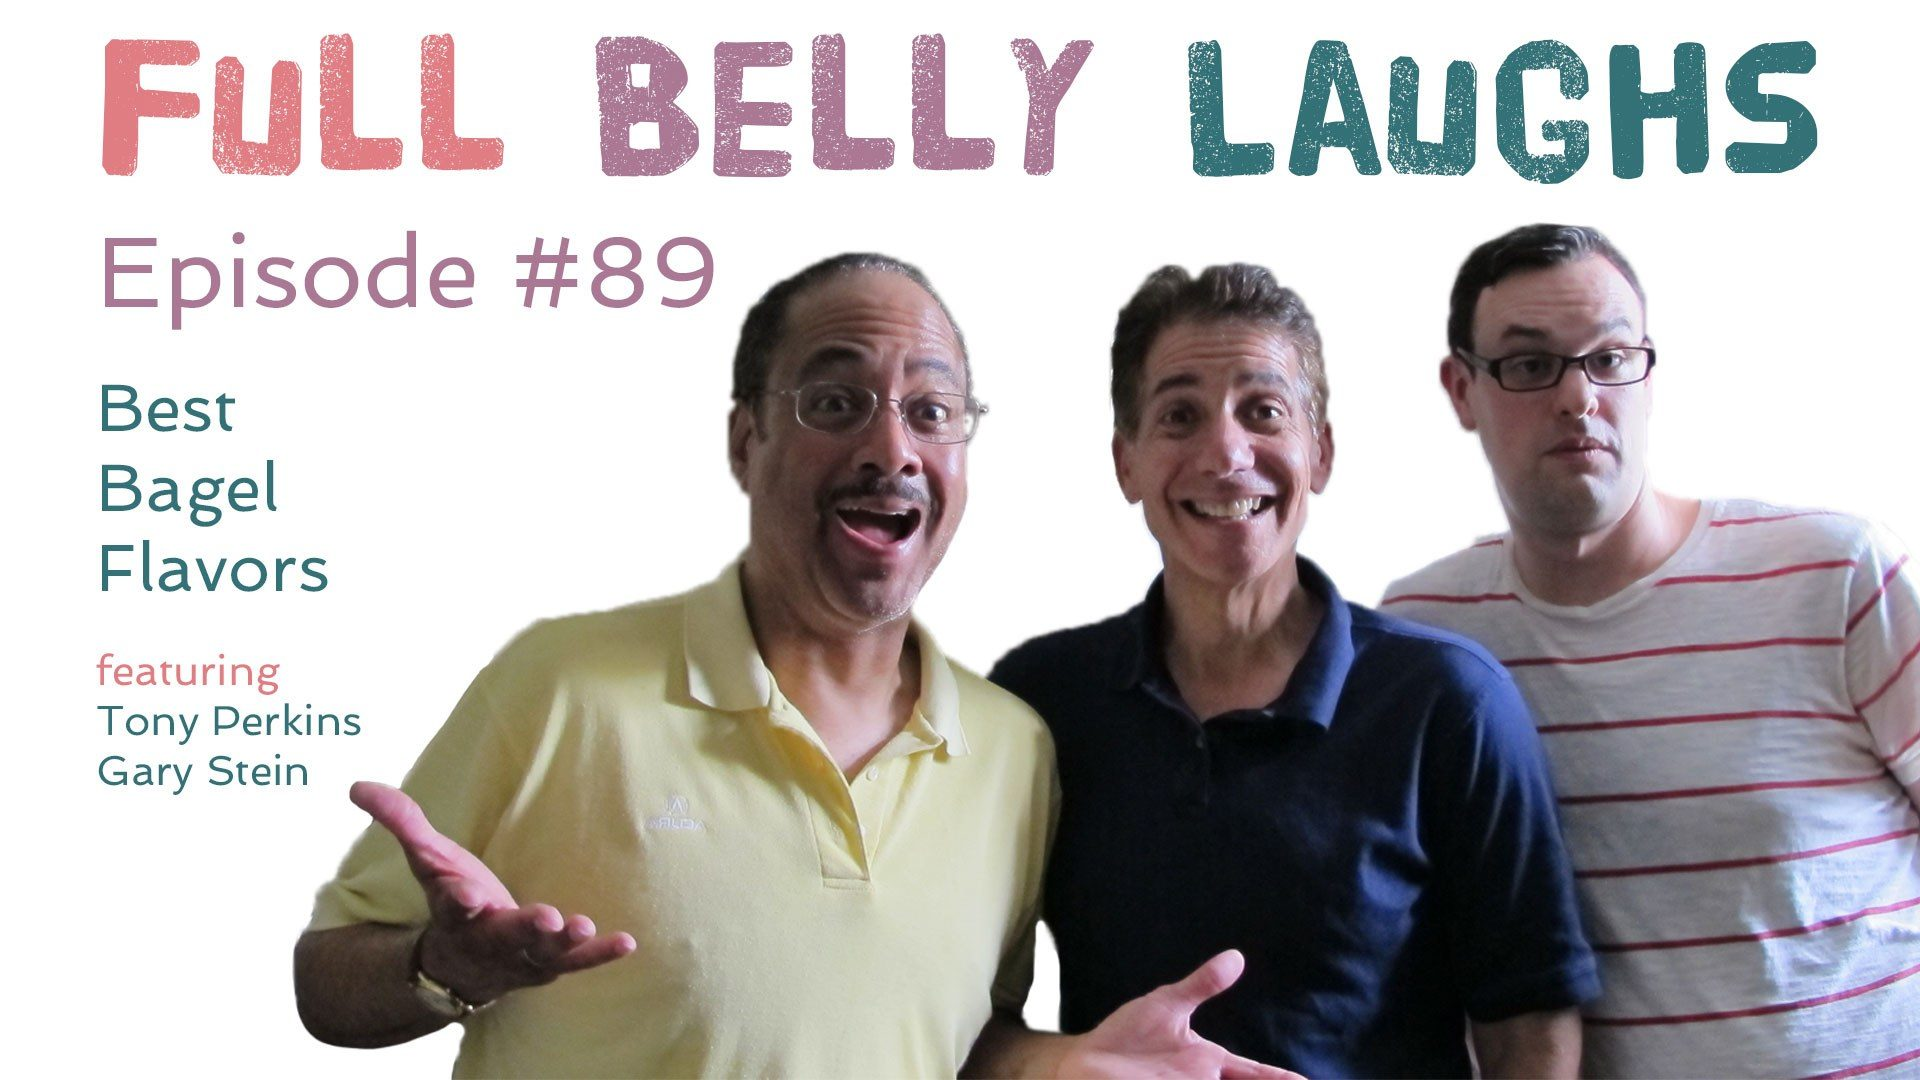 full belly laughs podcast episode 89 best bagel flavors tony perkins gary stein audio artwork